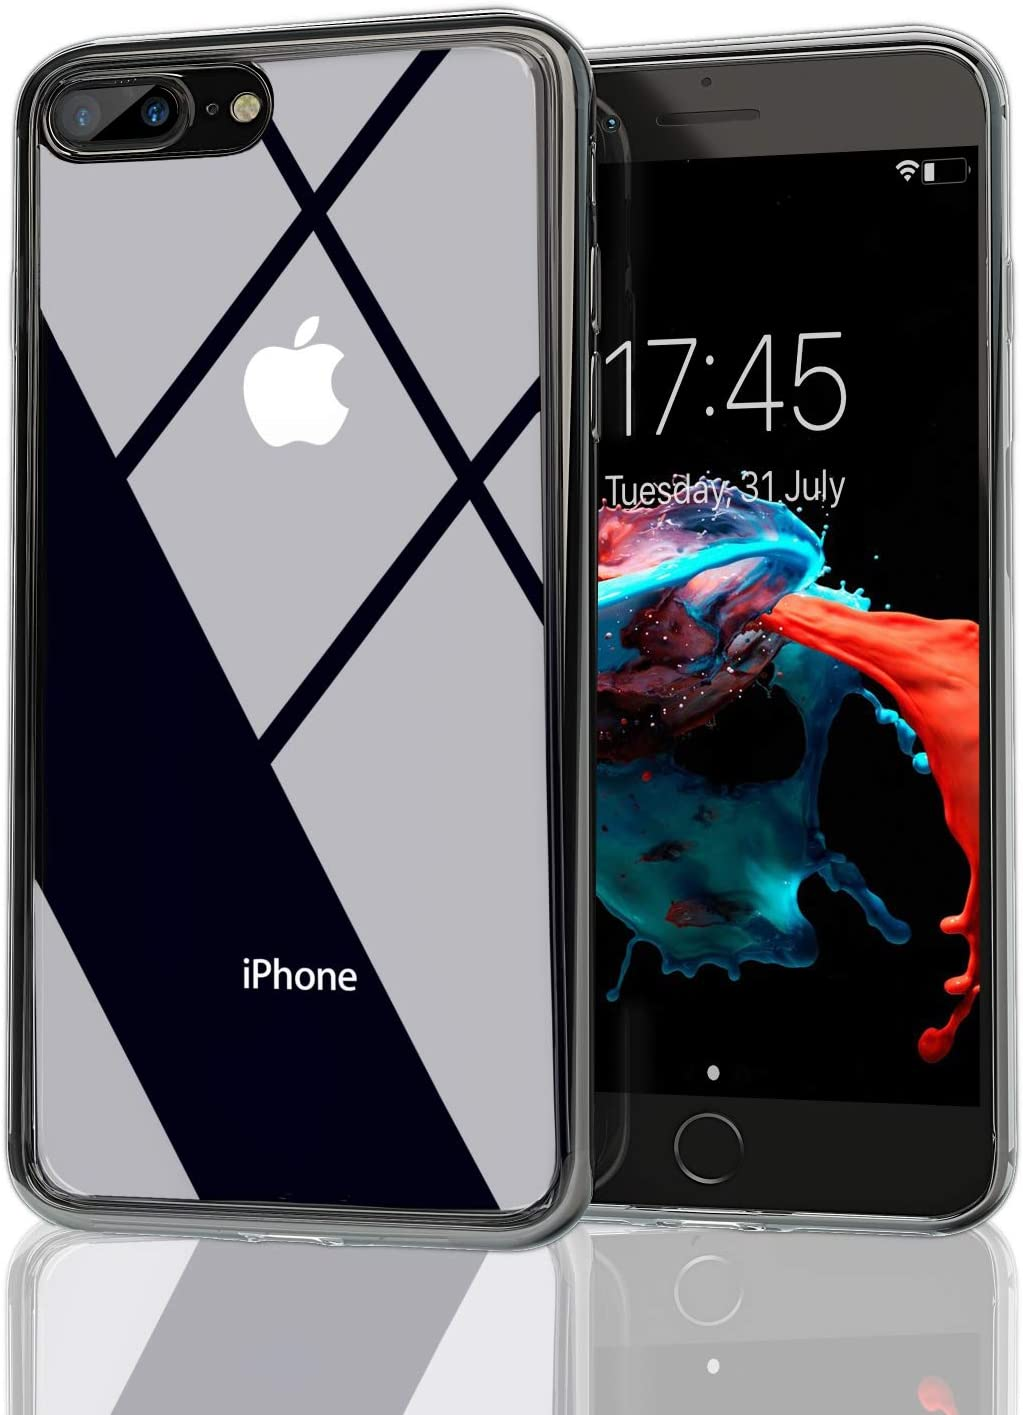 Nicexx iPhone 7 Plus Case   iPhone 8 Plus Case   Transparent Clear Case   Soft TPU Bumper Drop Protection   Wireless Charging   Compatible with iPhone 7 Plus /8 Plus